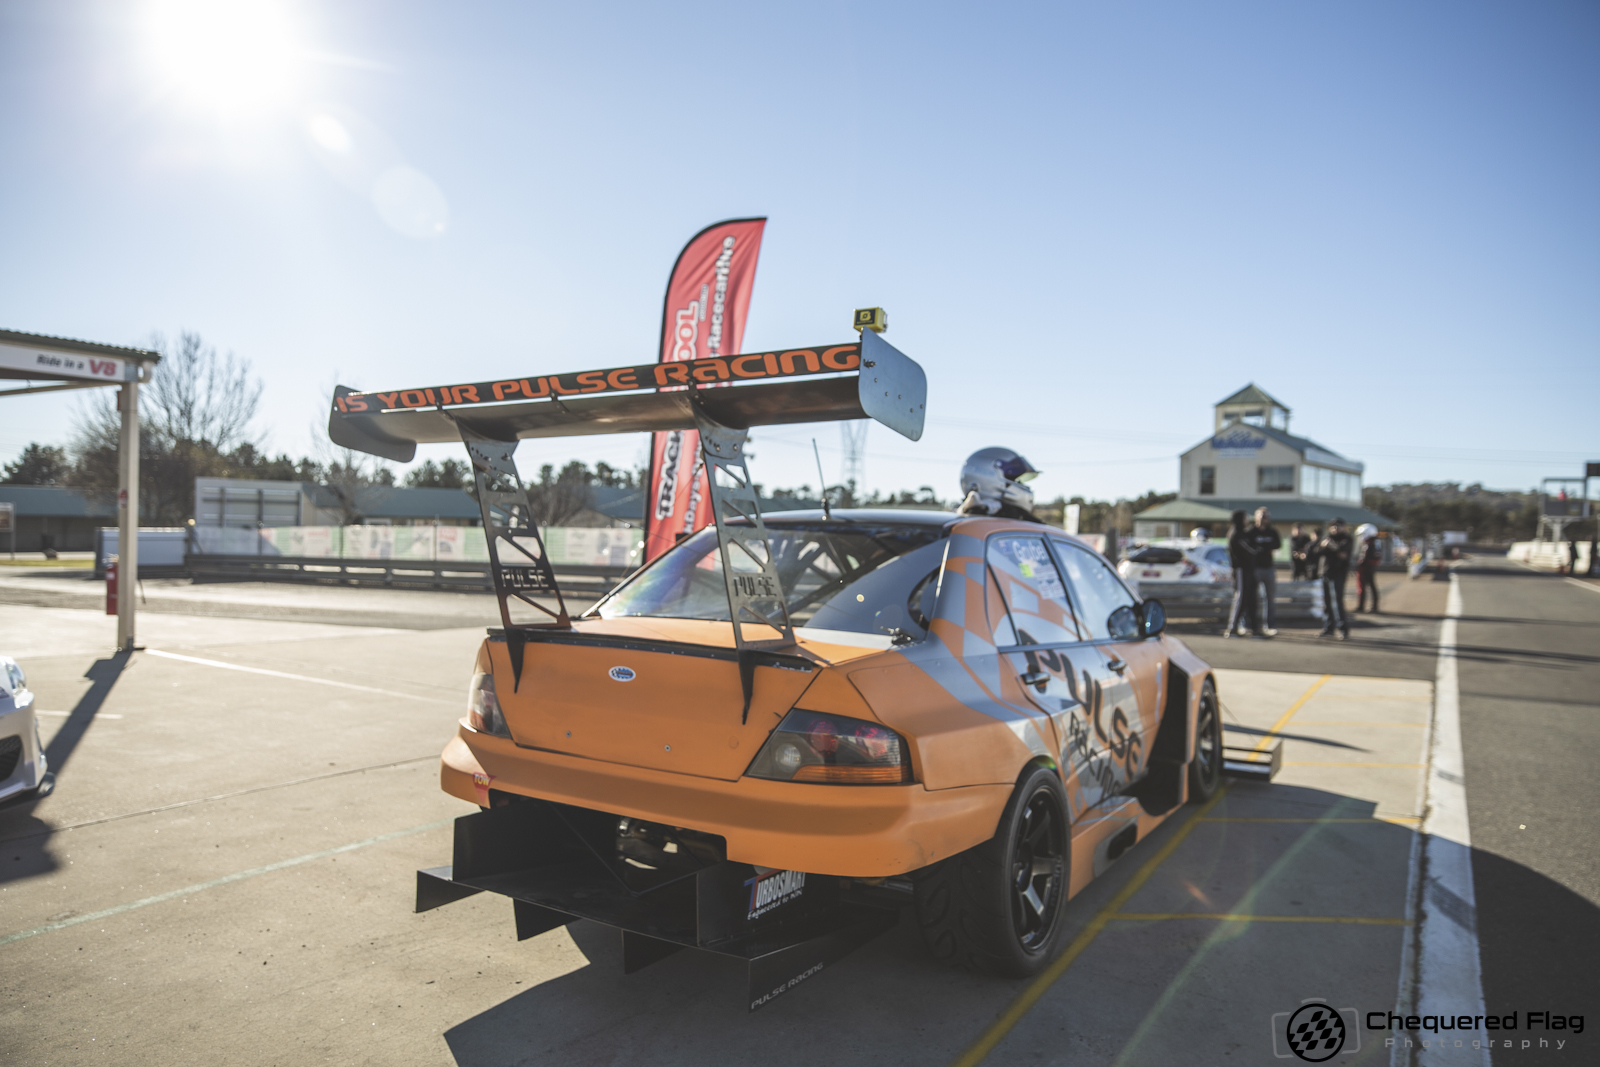 06 - Aus Time Attack - Chequered Flag